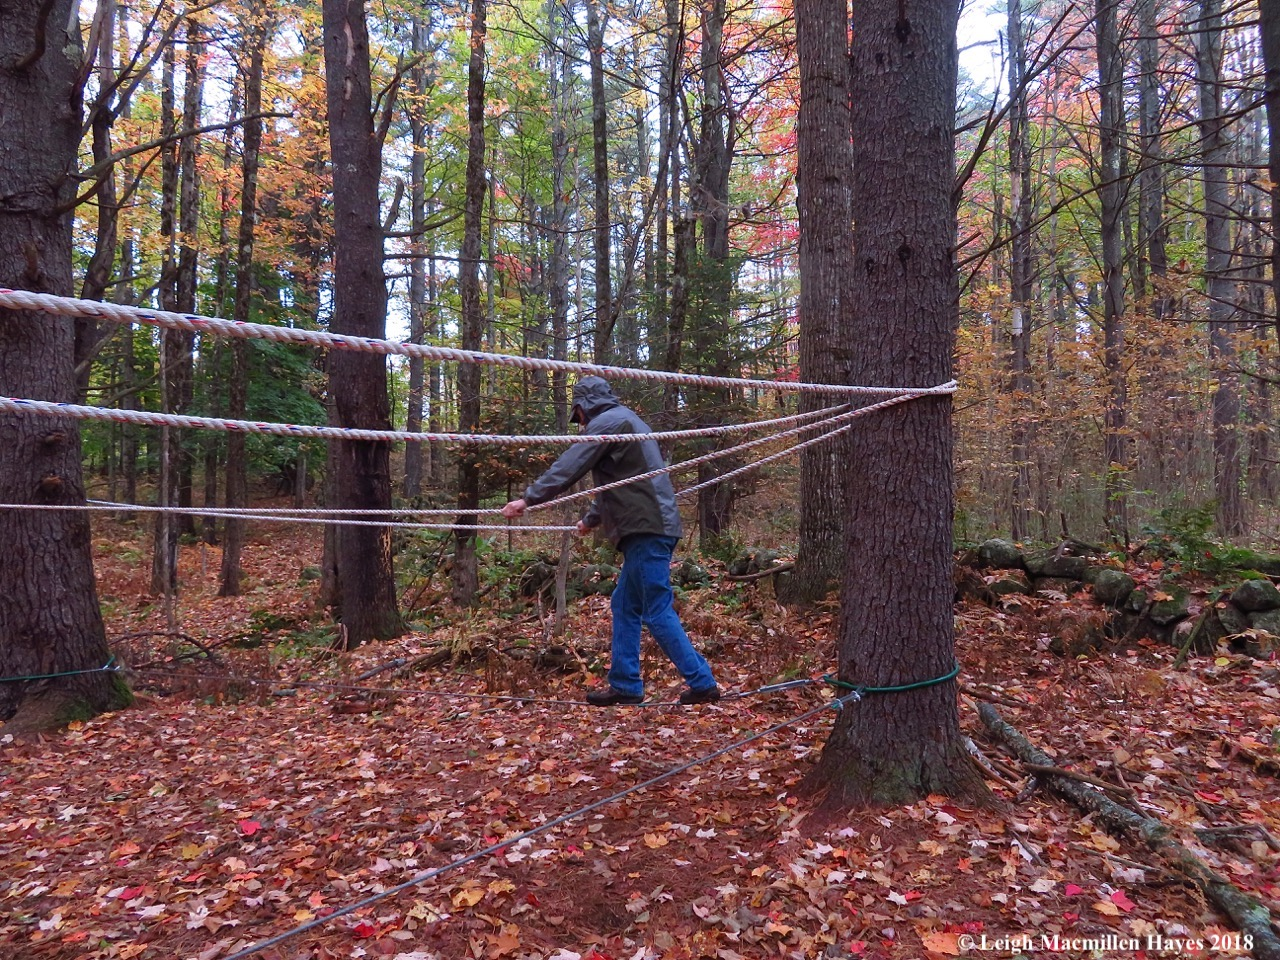 7-walking the tightrope